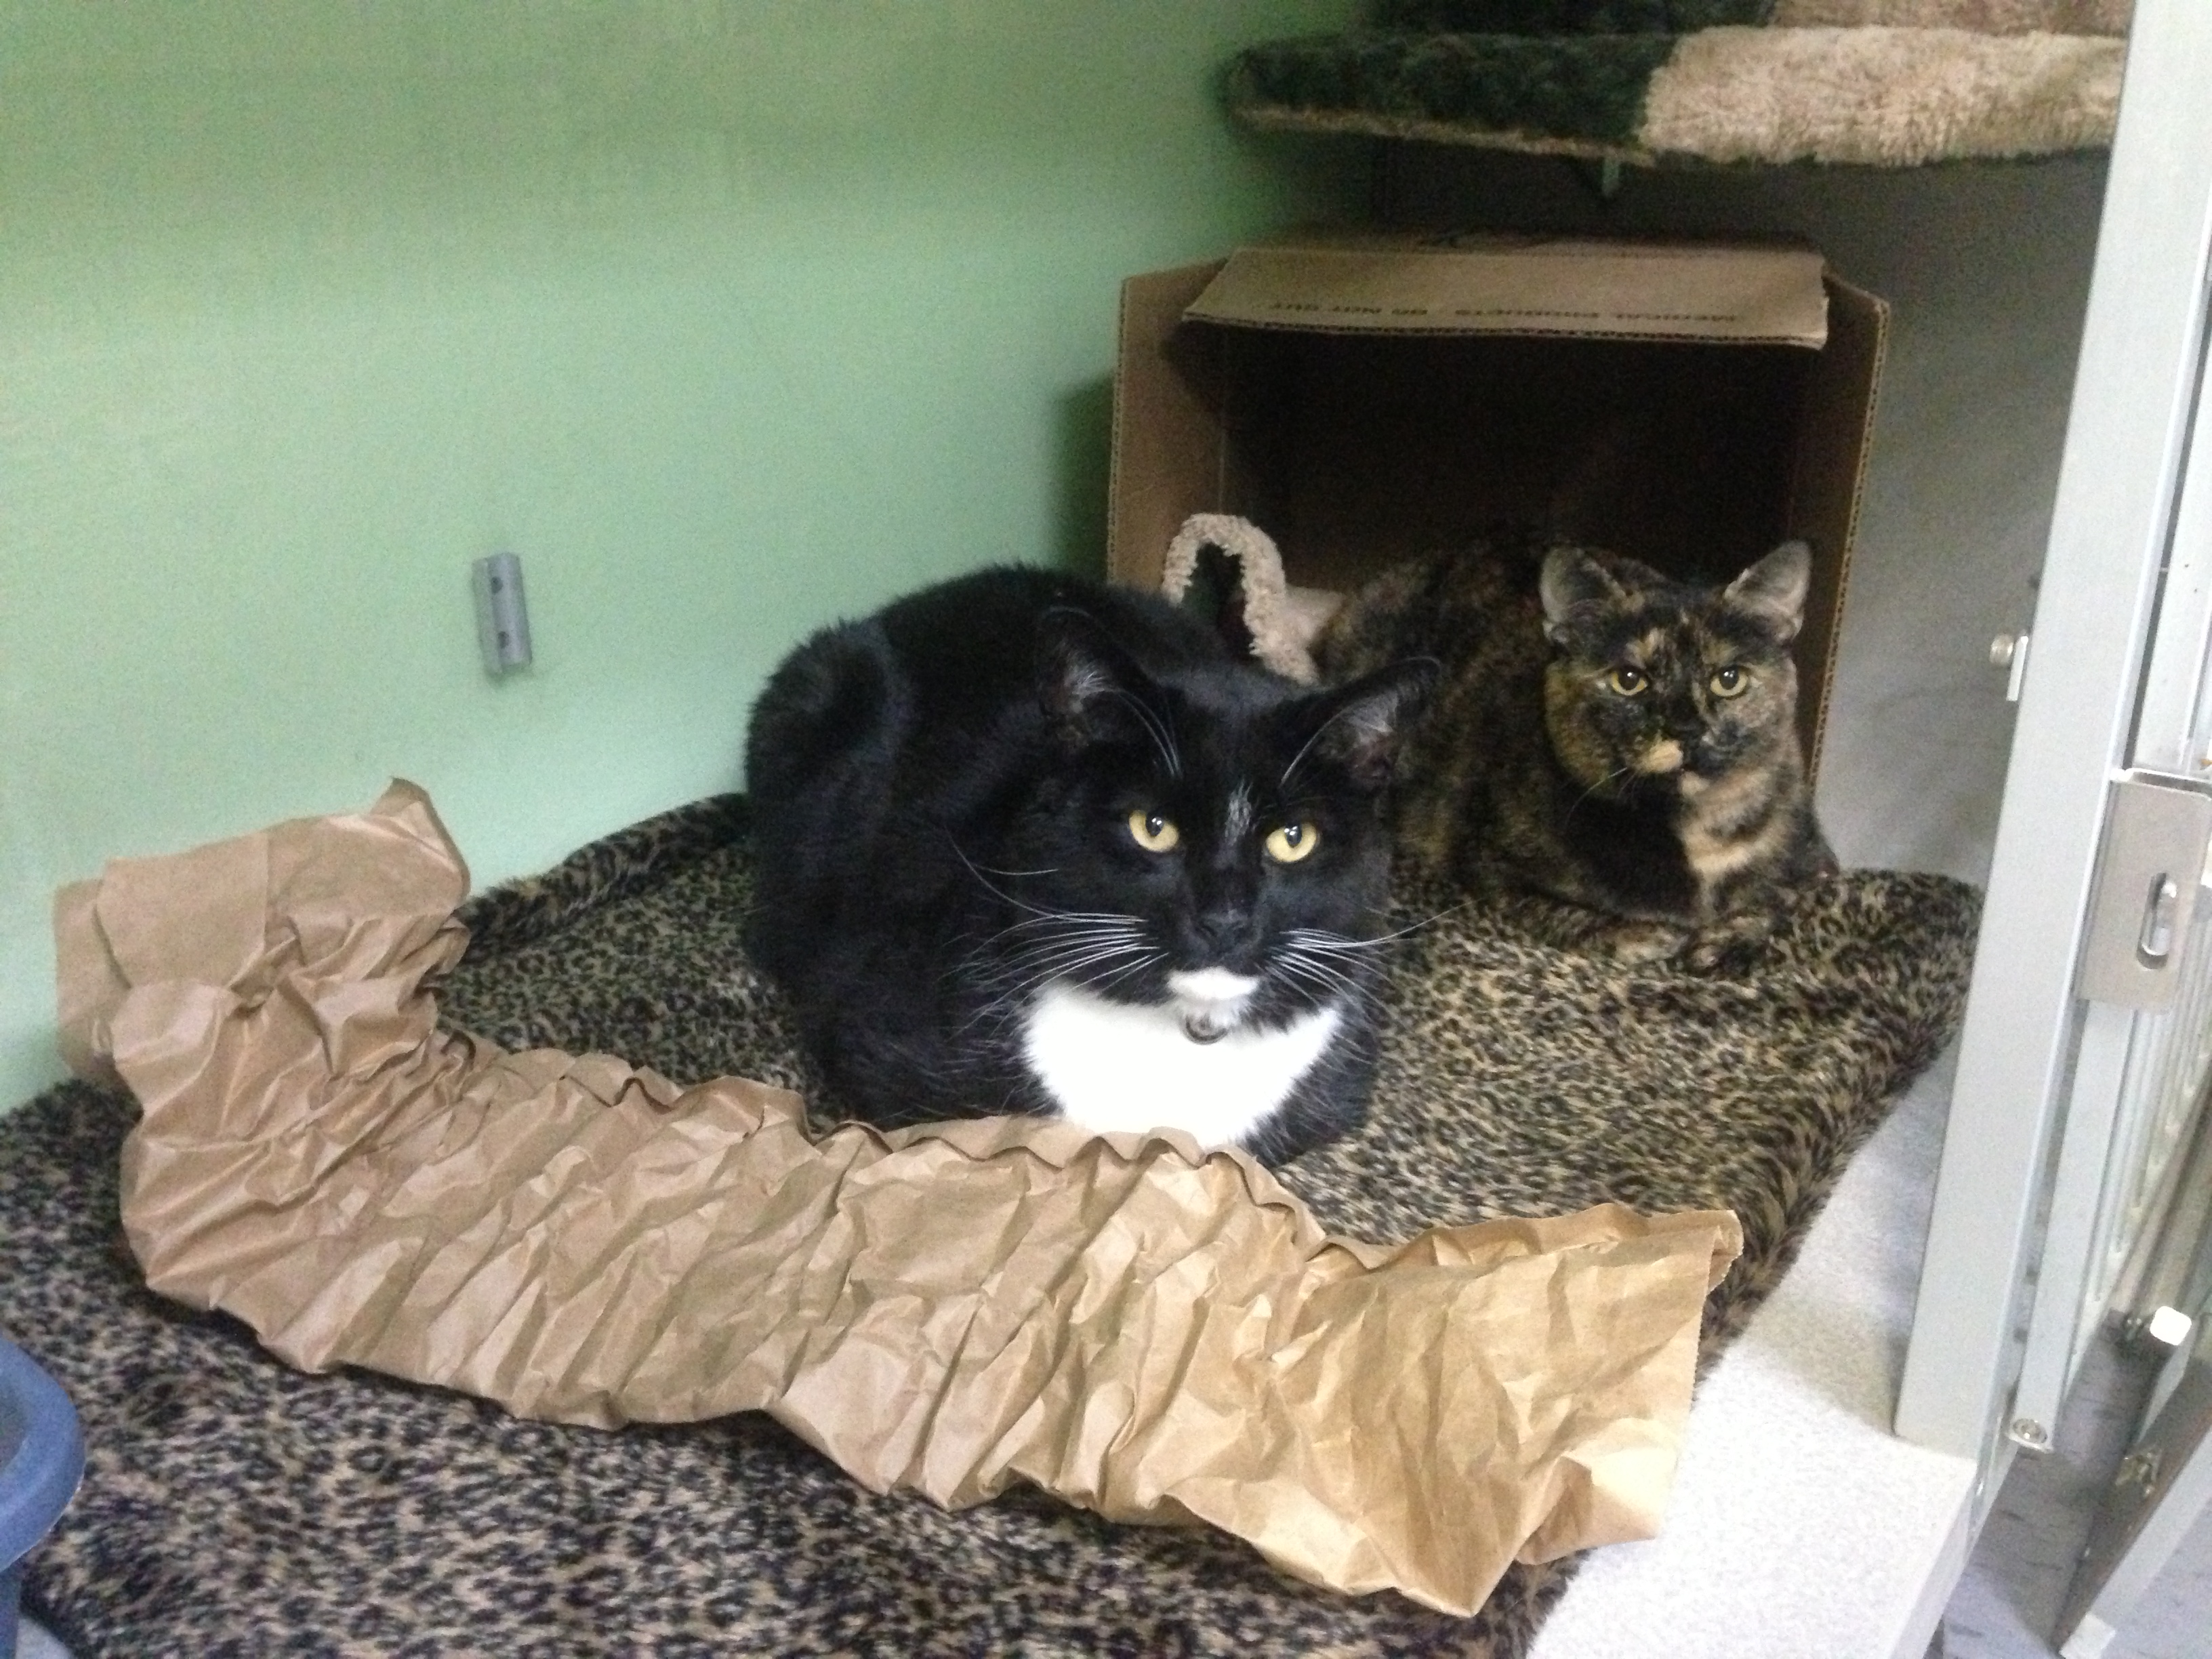 Two unrelated adult cats living together after being slowly & positively introduced.